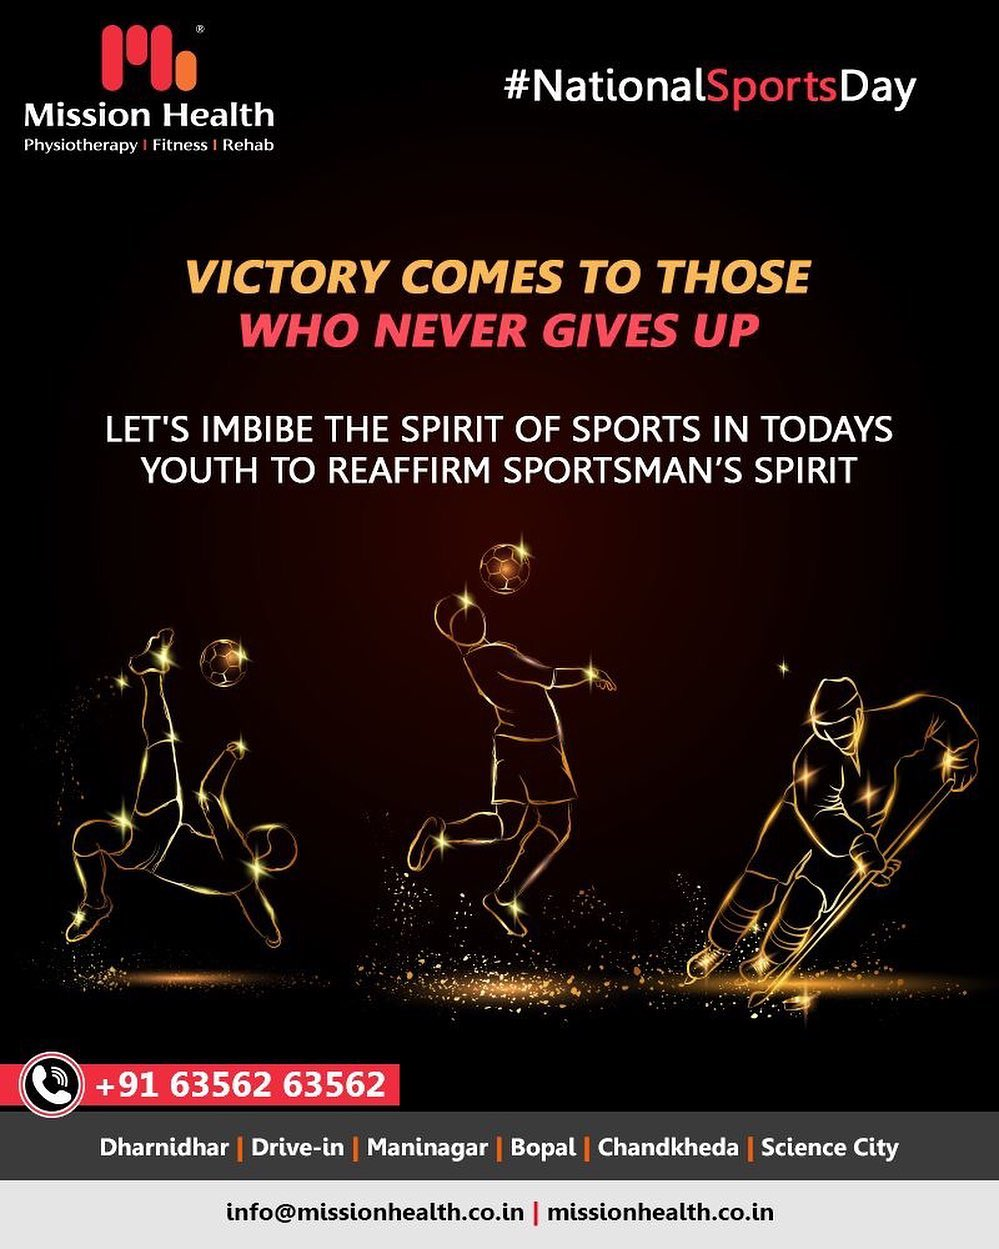 Victory comes to those who never gives up. Let's imbibe the spirit of sports in todays youth to reaffirm sportsman's spirit.  #NationalSportsDay #SportsDay  #MissionHealth #MissionHealthIndia #AbilityClinic #MovementIsLife